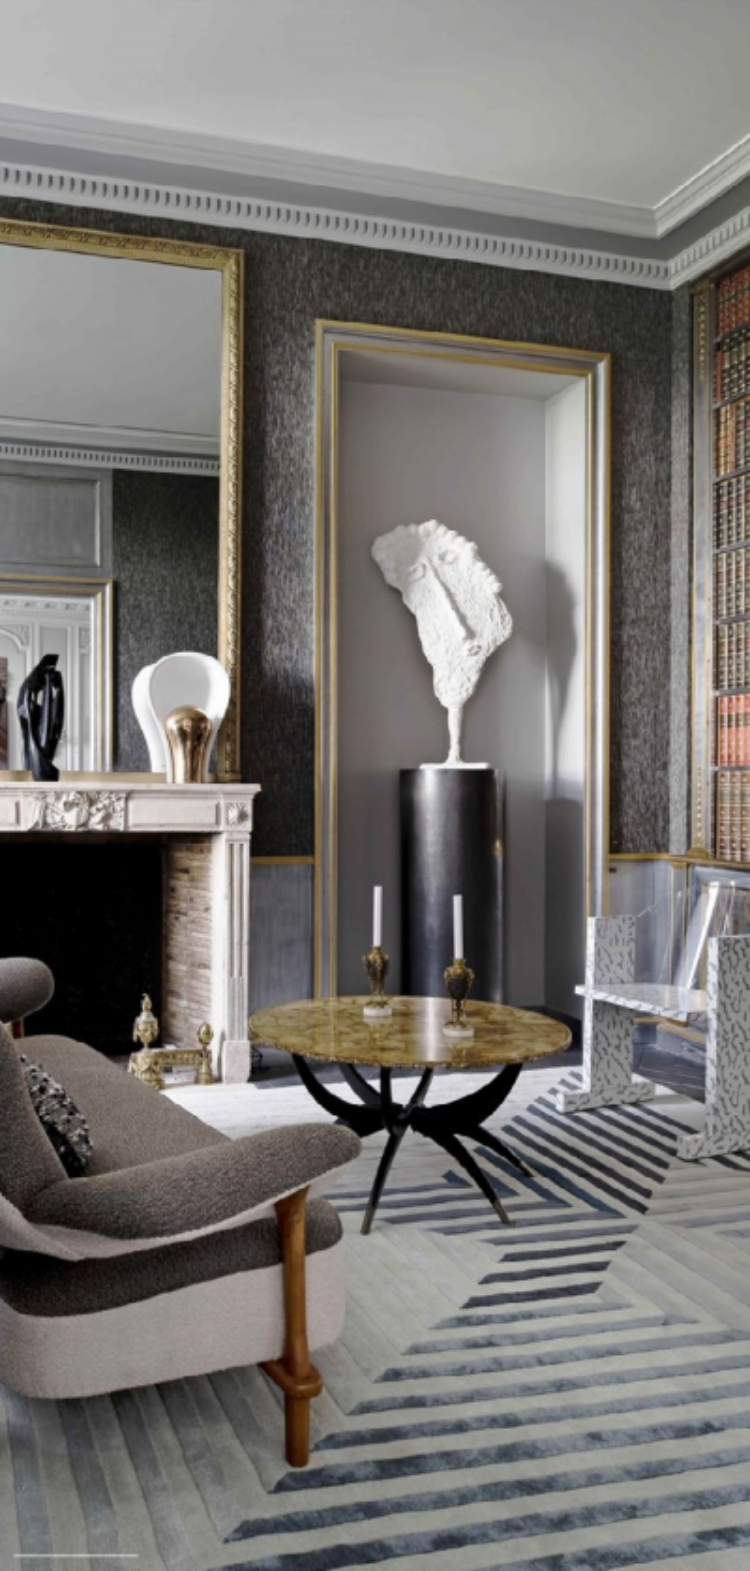 Jean-Louis Deniot - The Top Interior Designer jean-louis deniot Jean-Louis Deniot – The Top Interior Designer Jean Louis Deniot The Top Interior Designer 1